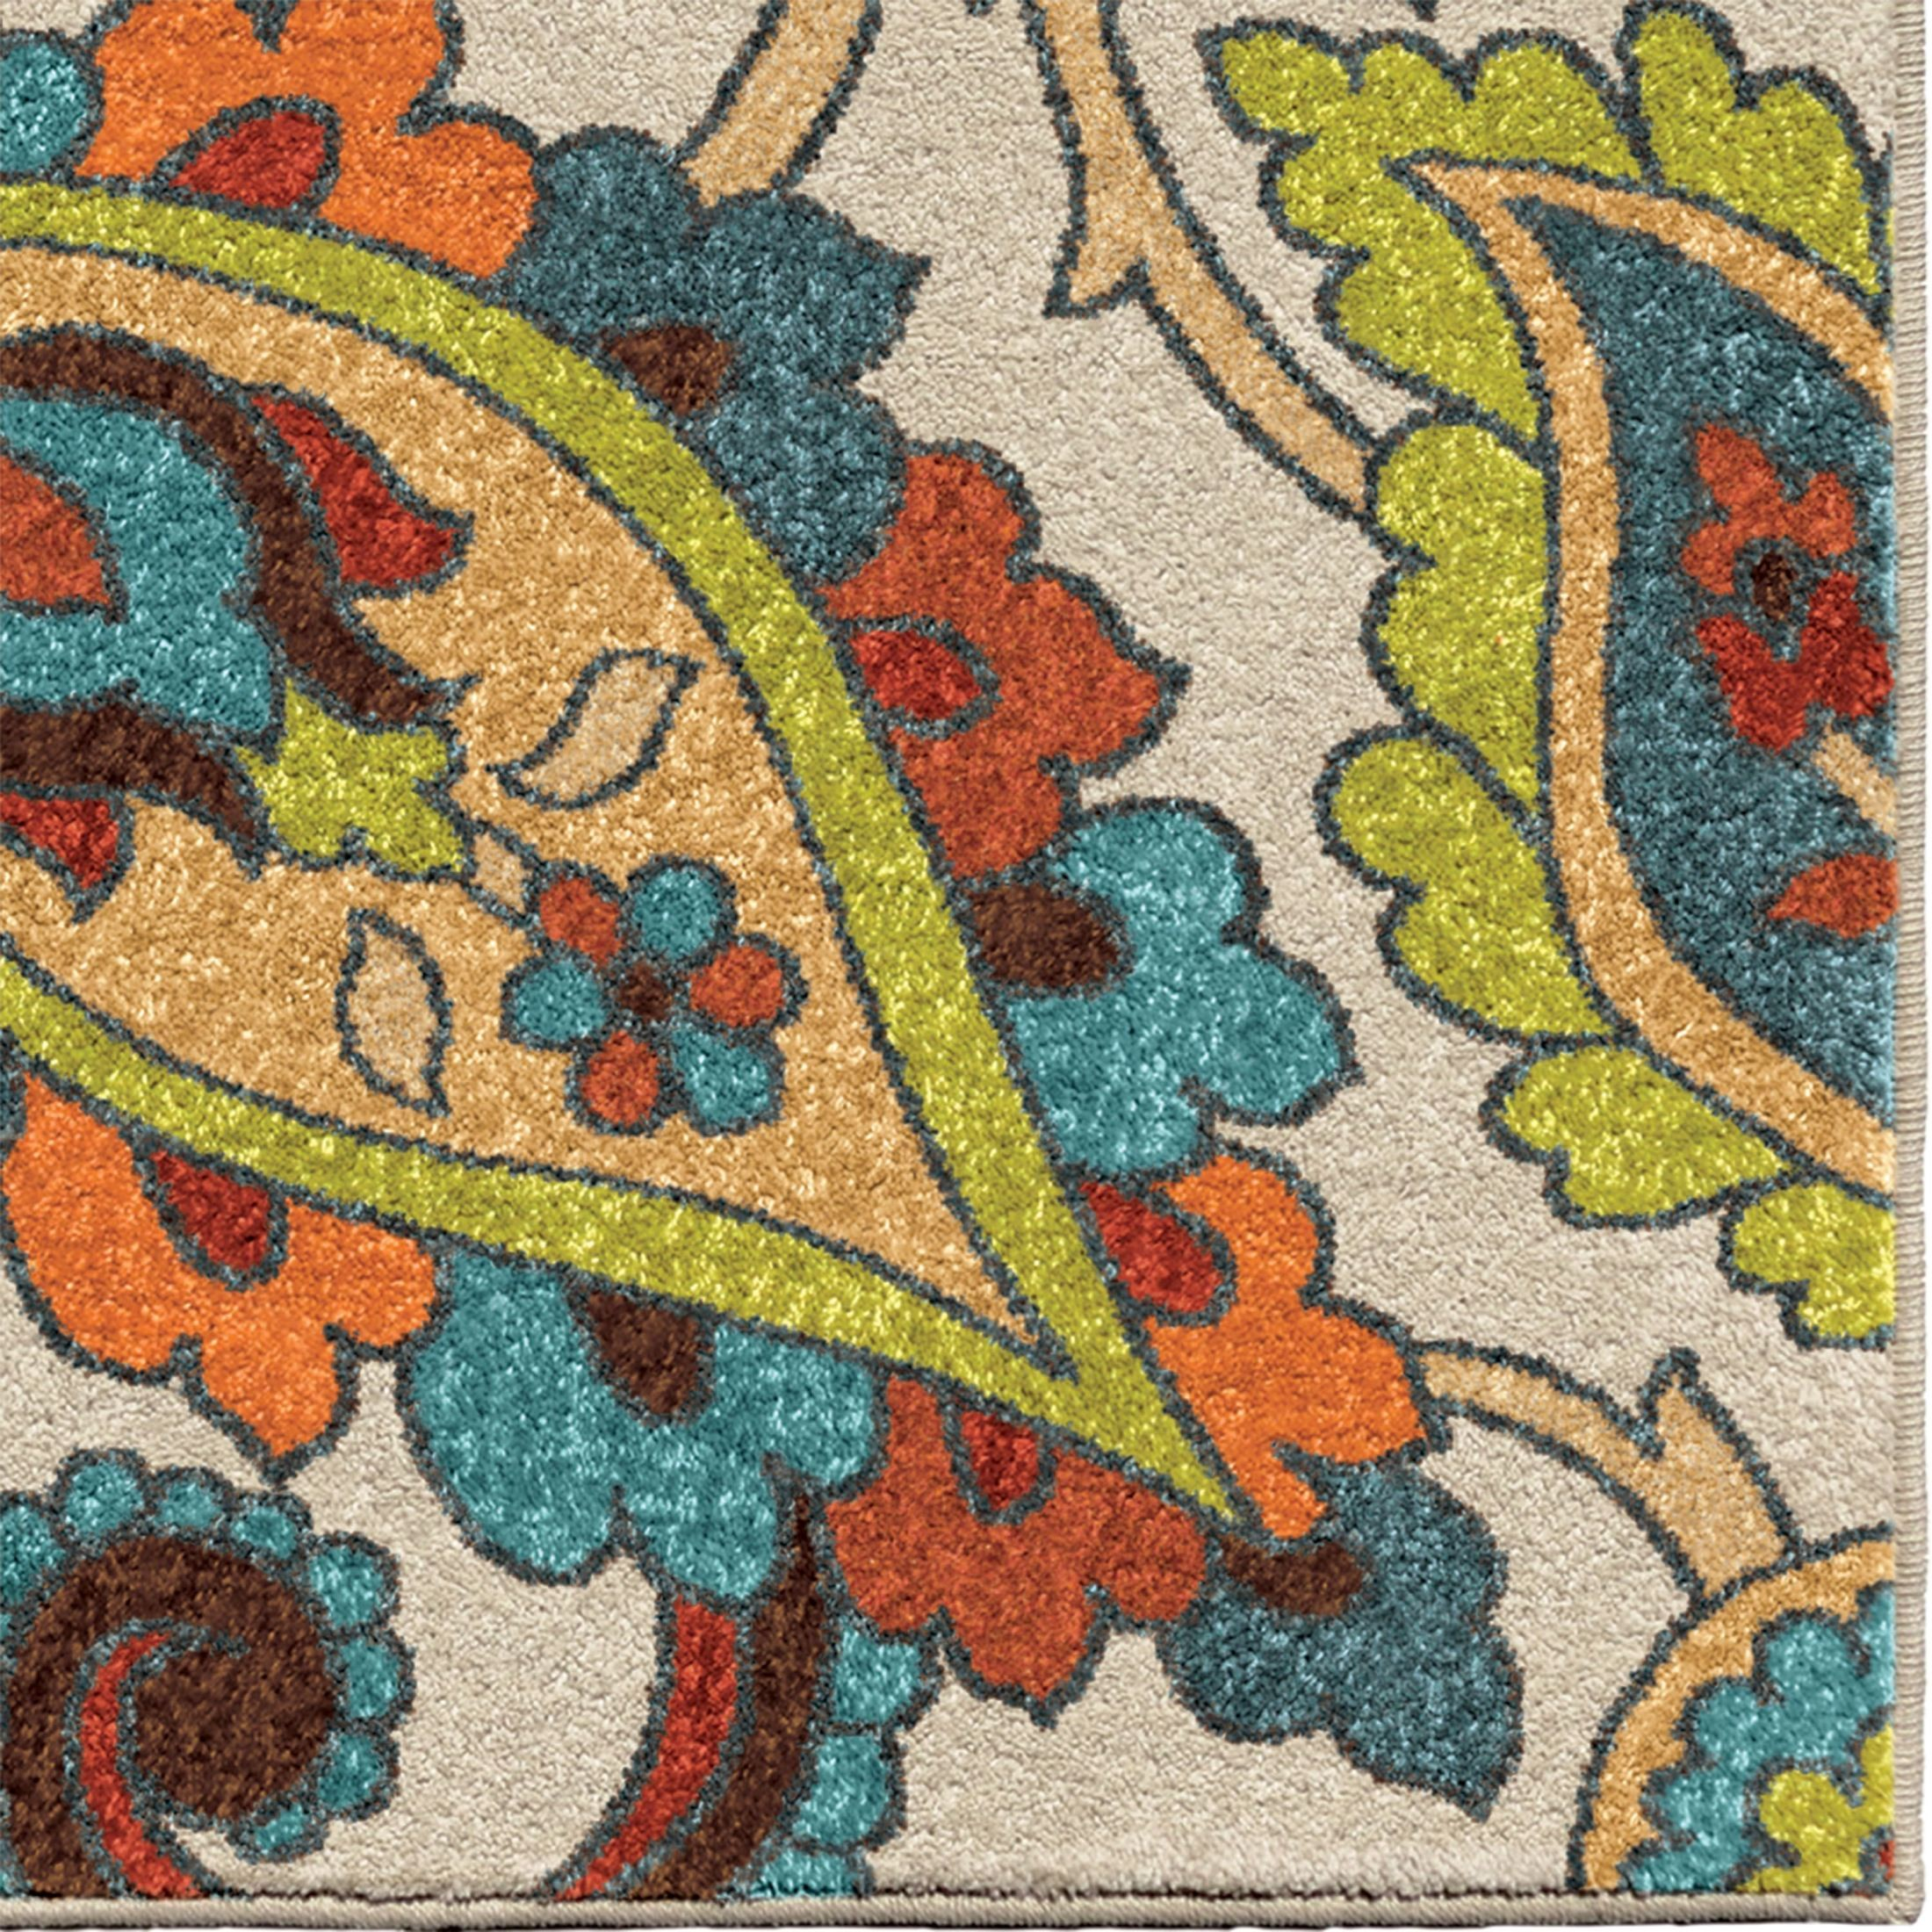 Bright Outdoor Area Rugs: Spoleto Bright Color Paisley Ginger Garden Multi Large